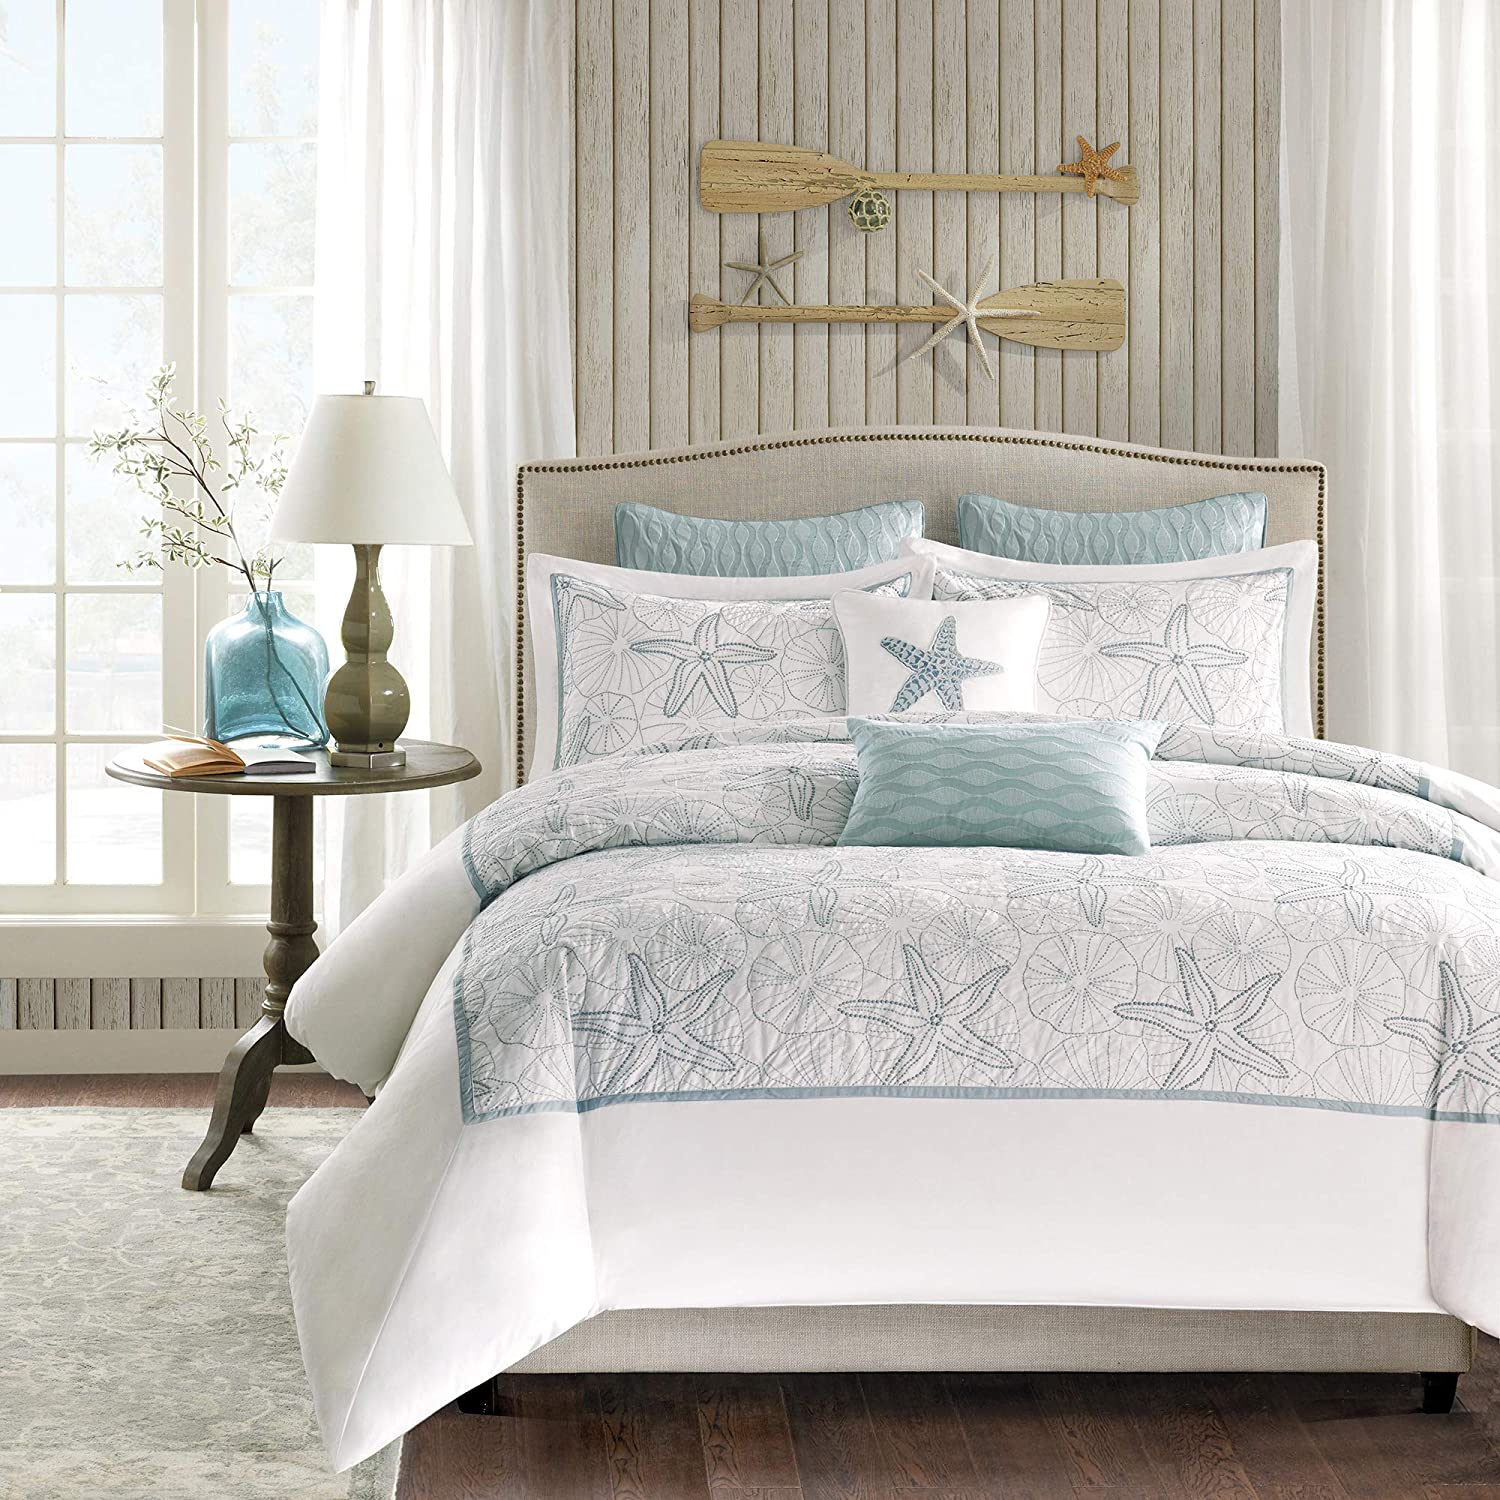 Harbor House Maya Bay Duvet Cover King Size White Blue Embroidered Coastal Seashells Starfish Duvet Cover Set 3 Piece 100 Cotton Light Weight Bed Comforter Covers Home Kitchen